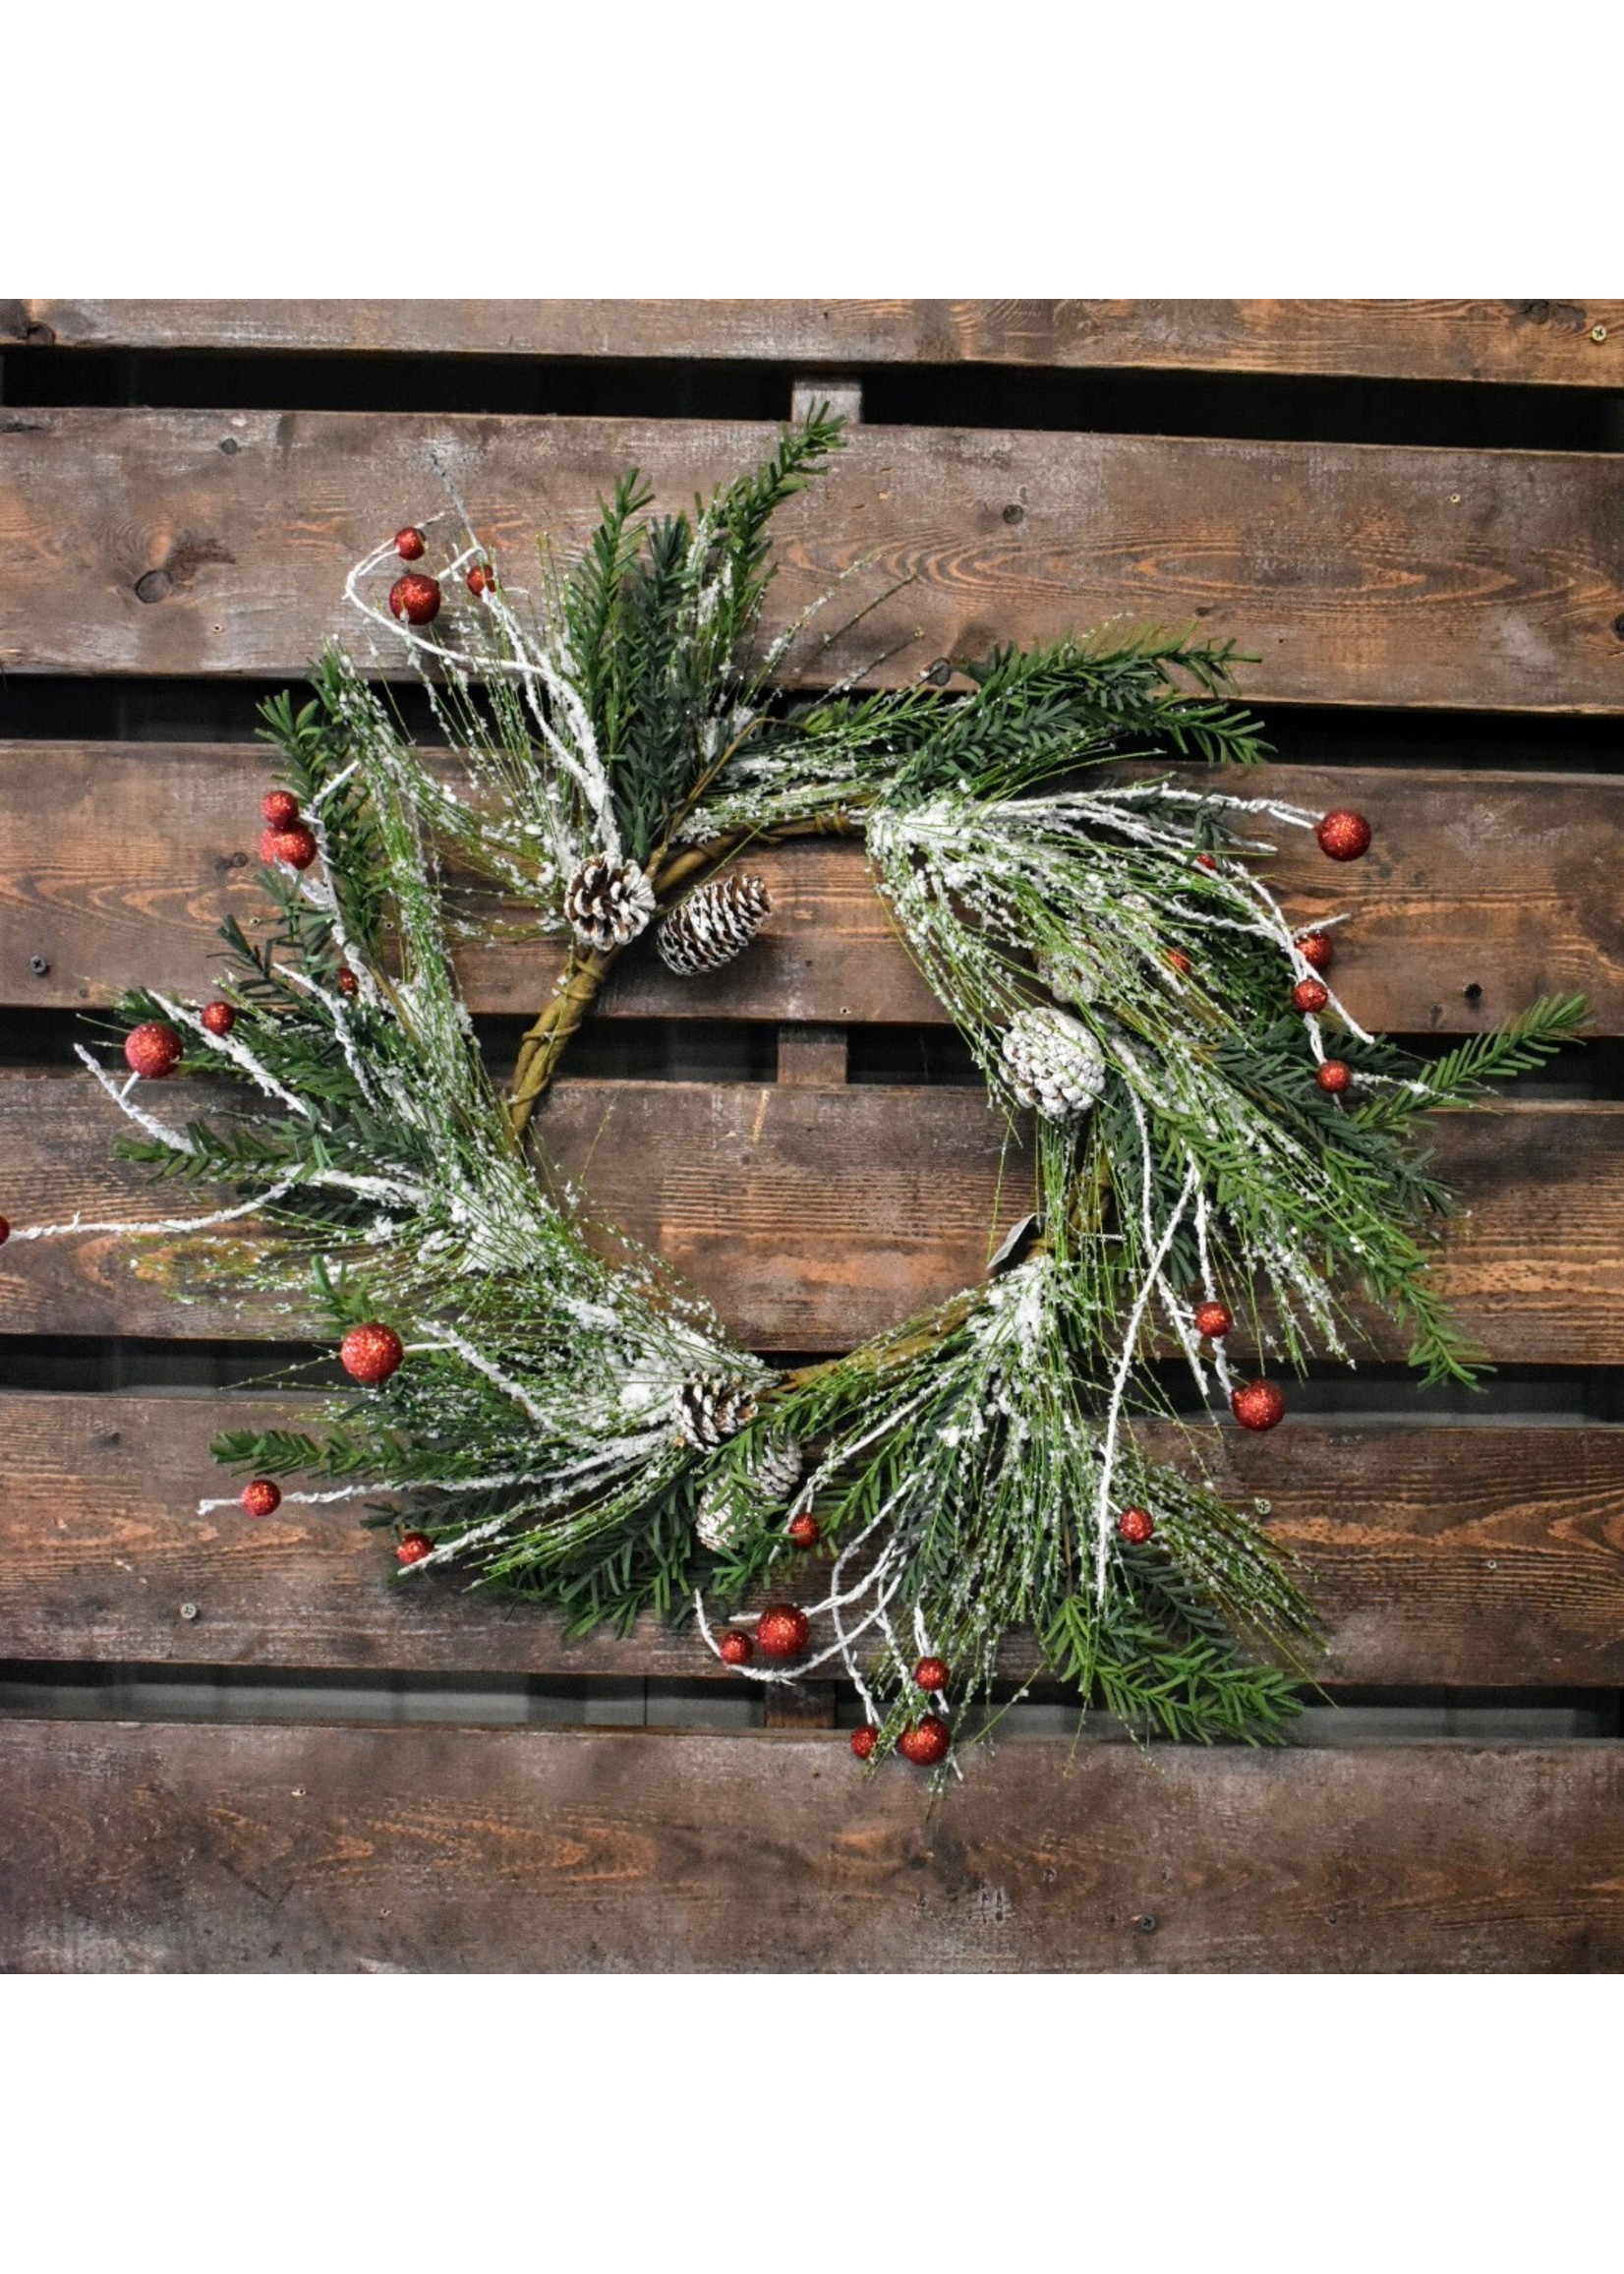 MIDWEST CBK HOLIDAY WREATH WITH PINECONES